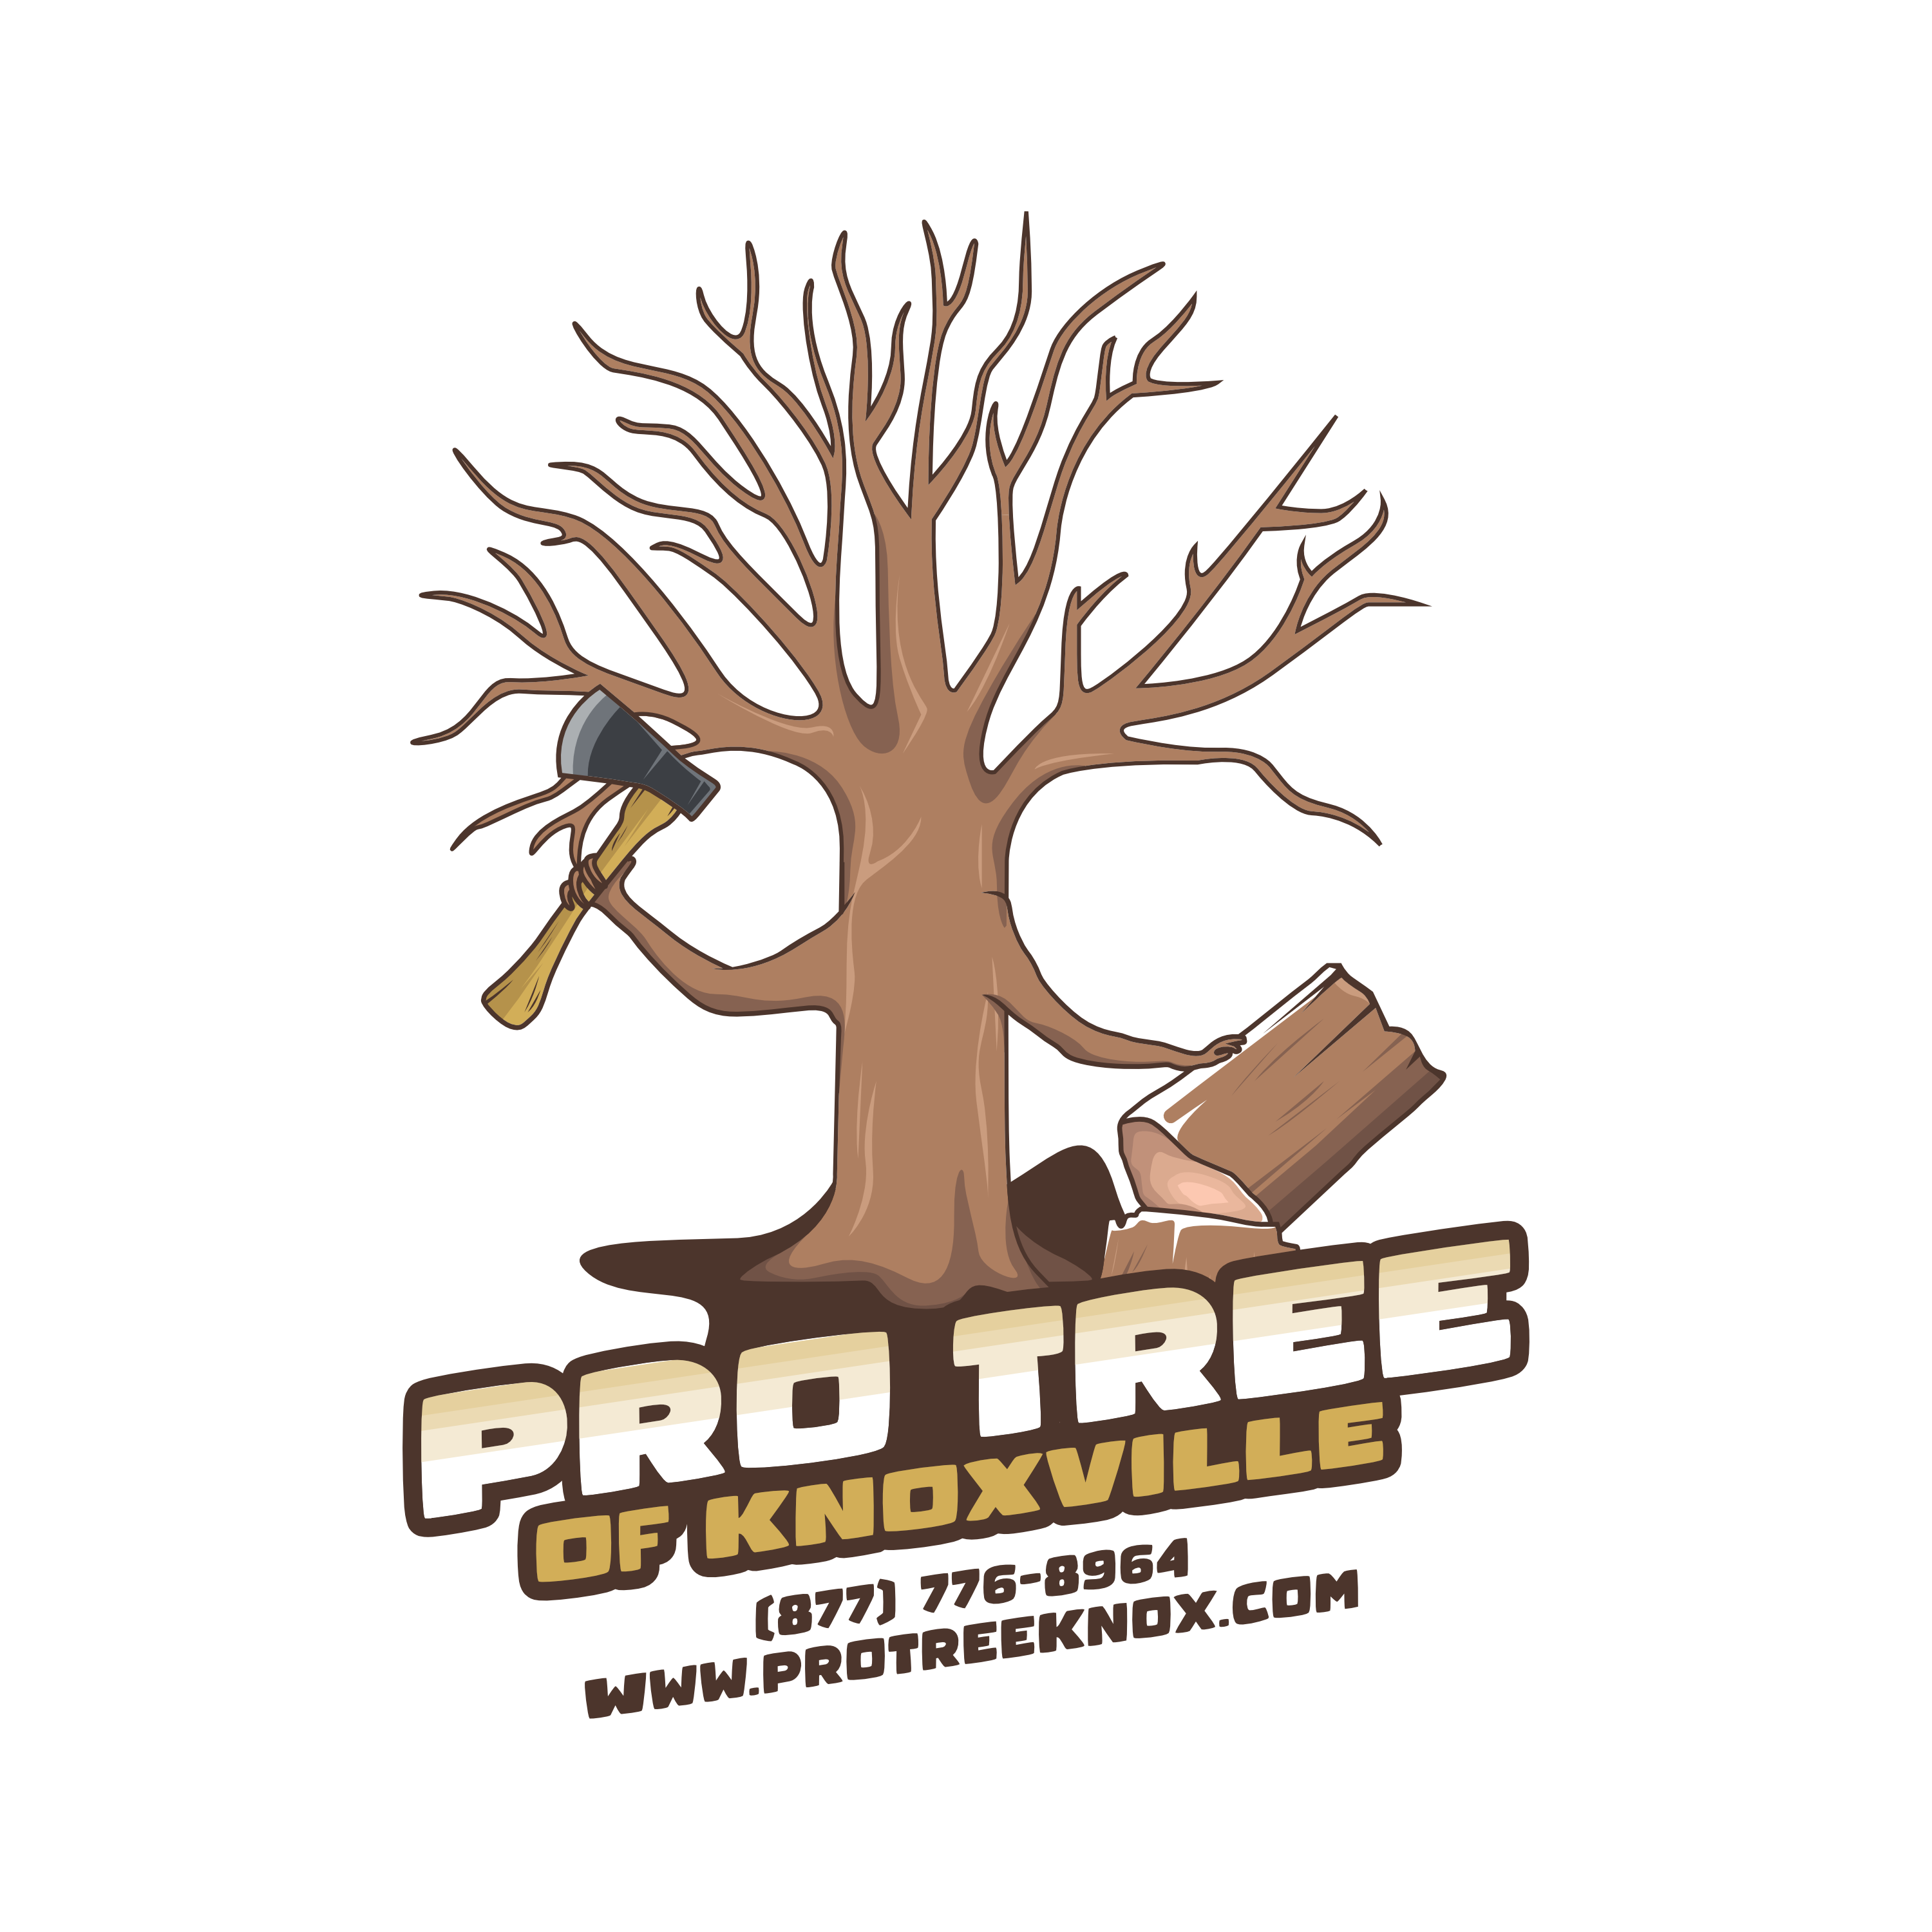 Pro Tree Of Knoxville Announces Tree Removal Services For The Knoxville Area With Certified Arborists And Free Estimates 1